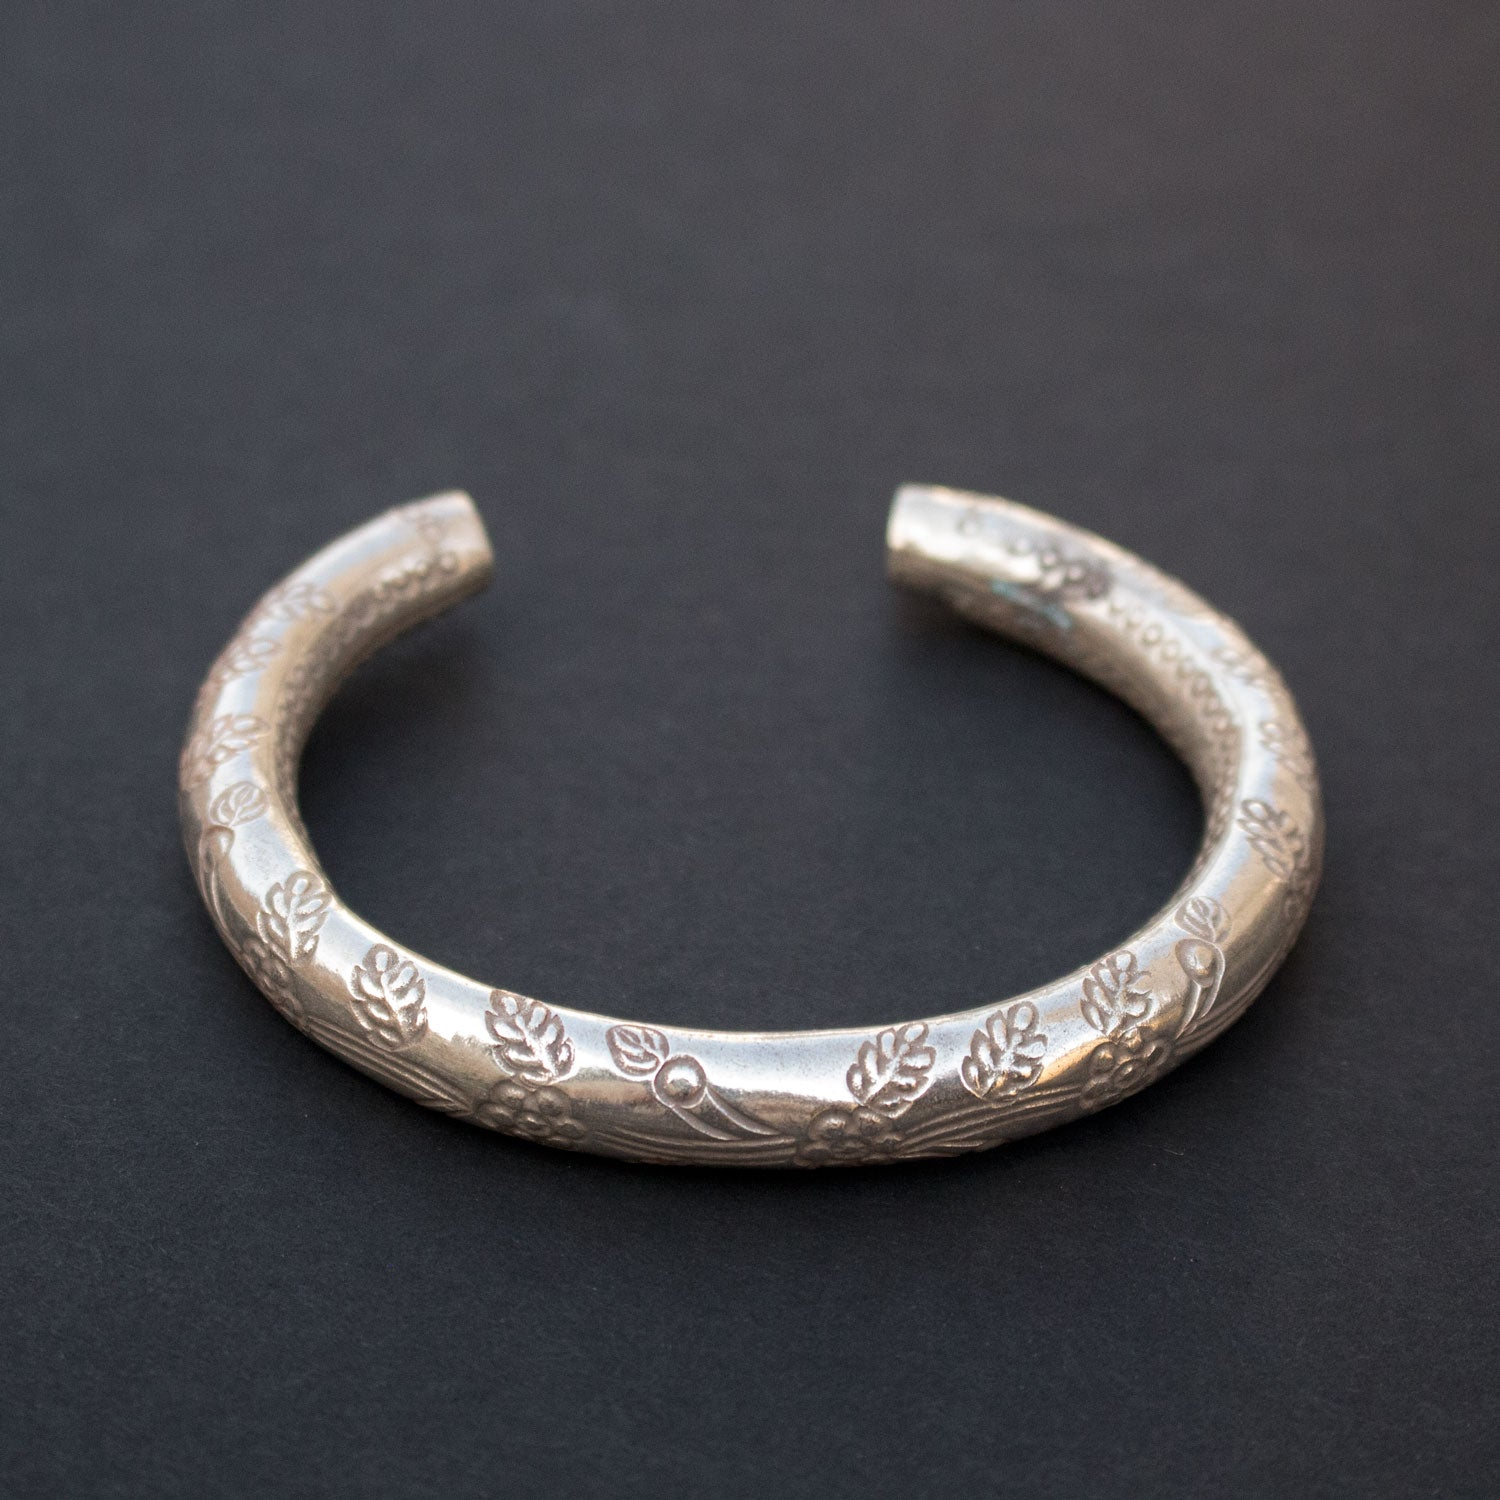 Etched sterling silver bangle